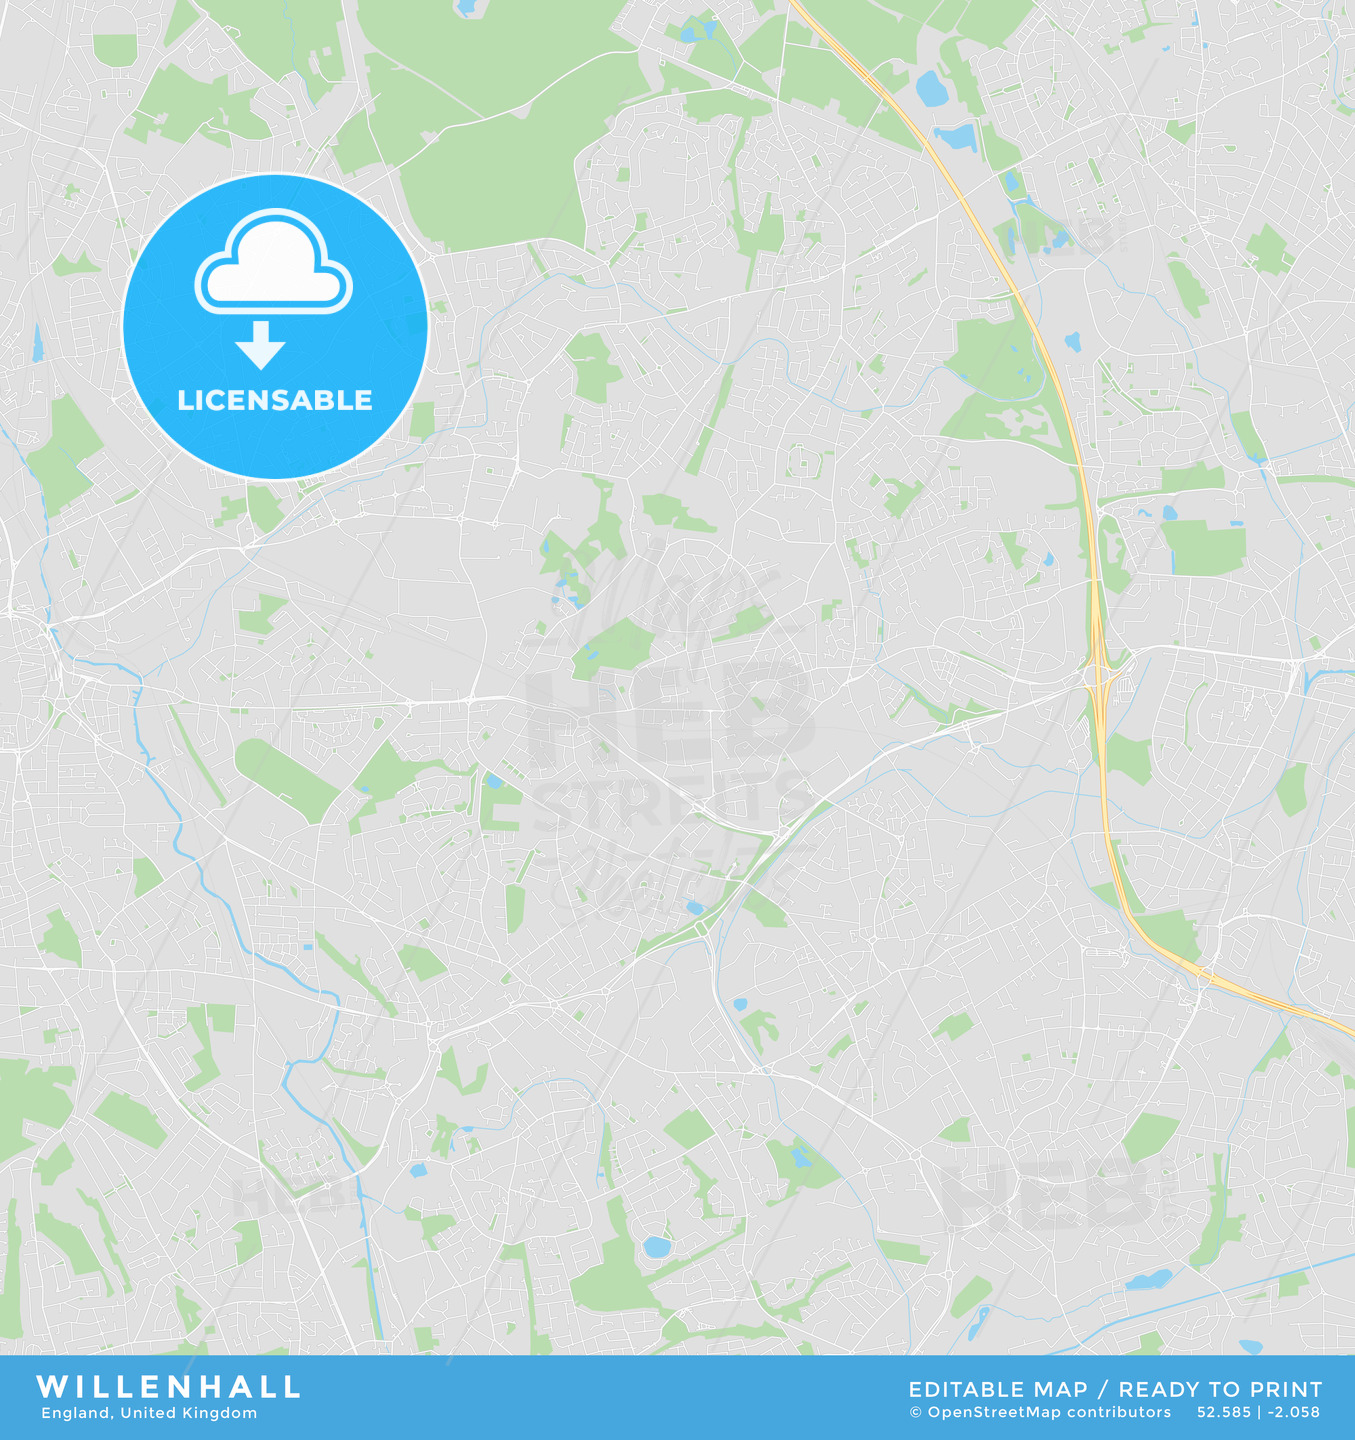 photograph about Printable Maps of England named Printable highway map of Willenhall, England